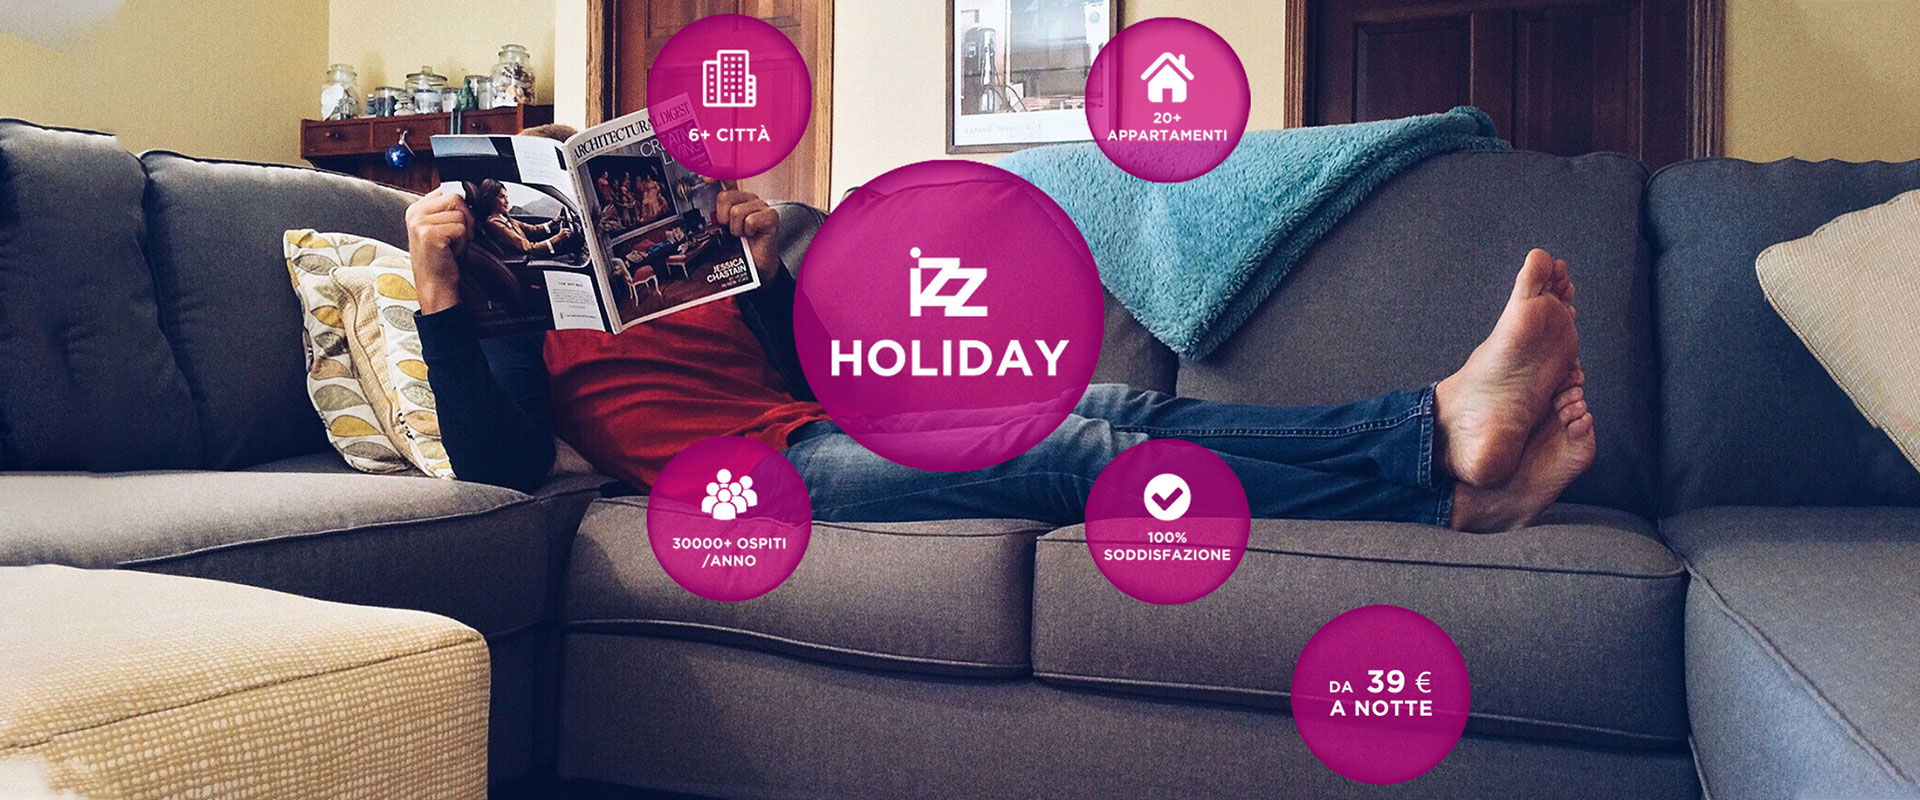 izzhome-izzholiday-header-12